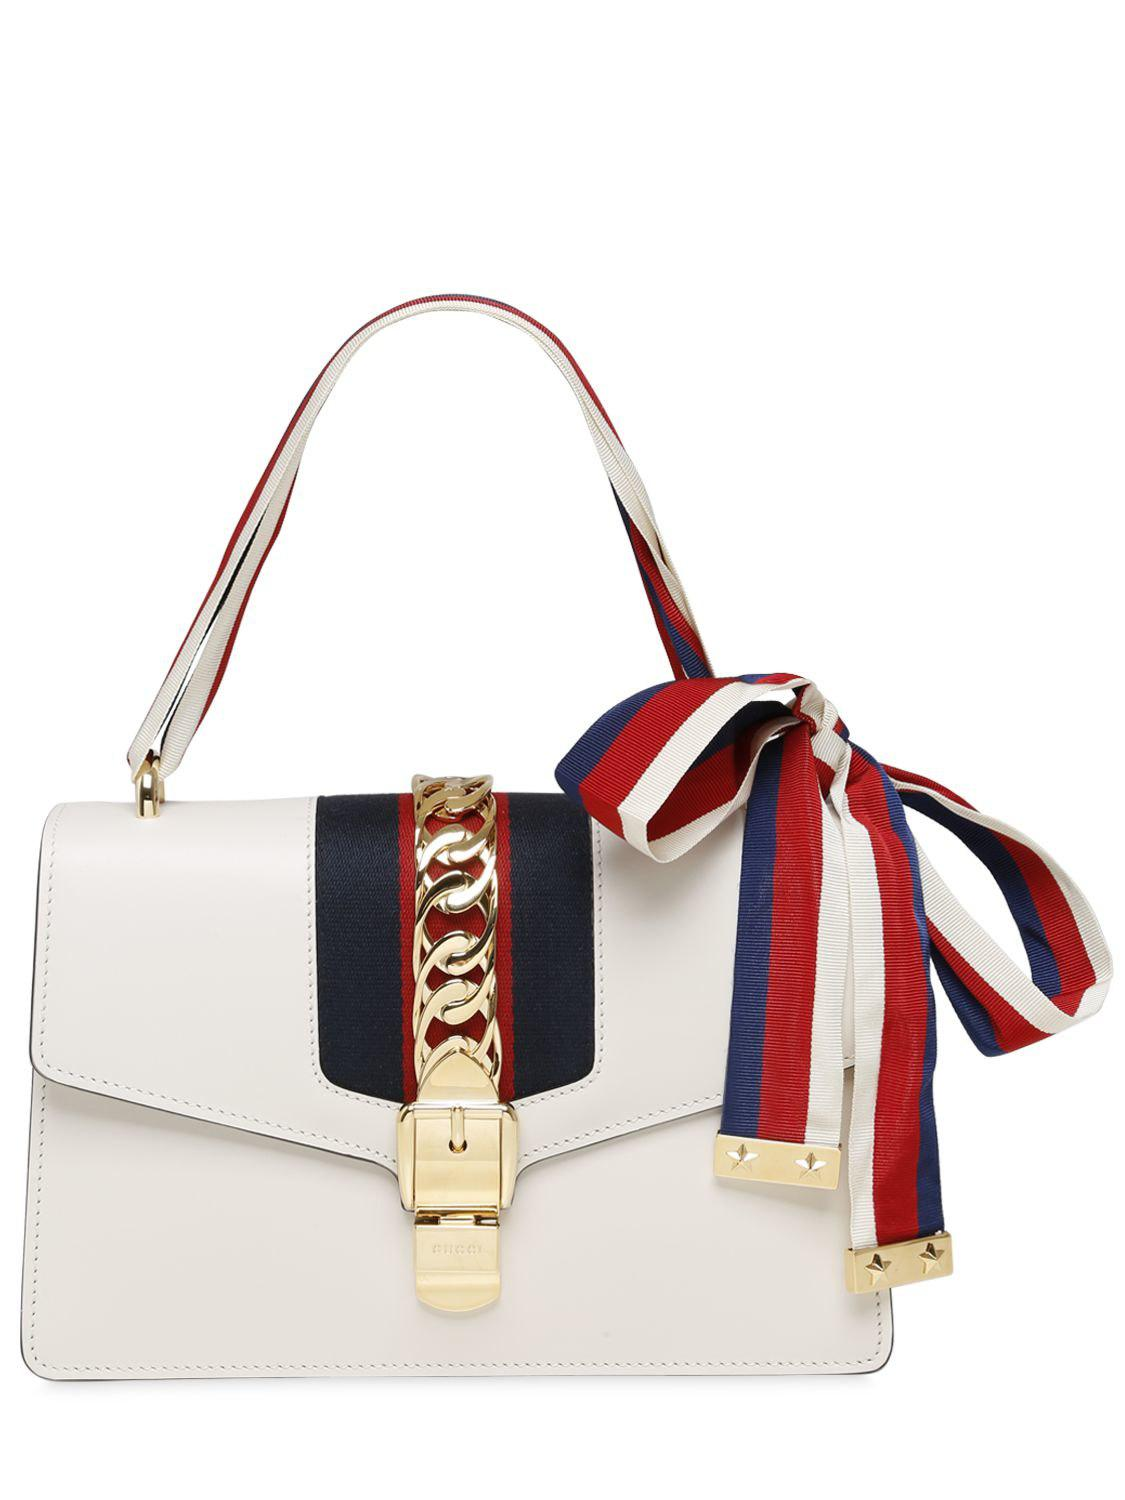 f40636113e6 Lyst - Gucci Small Sylvie Leather Shoulder Bag in White - Save 4%